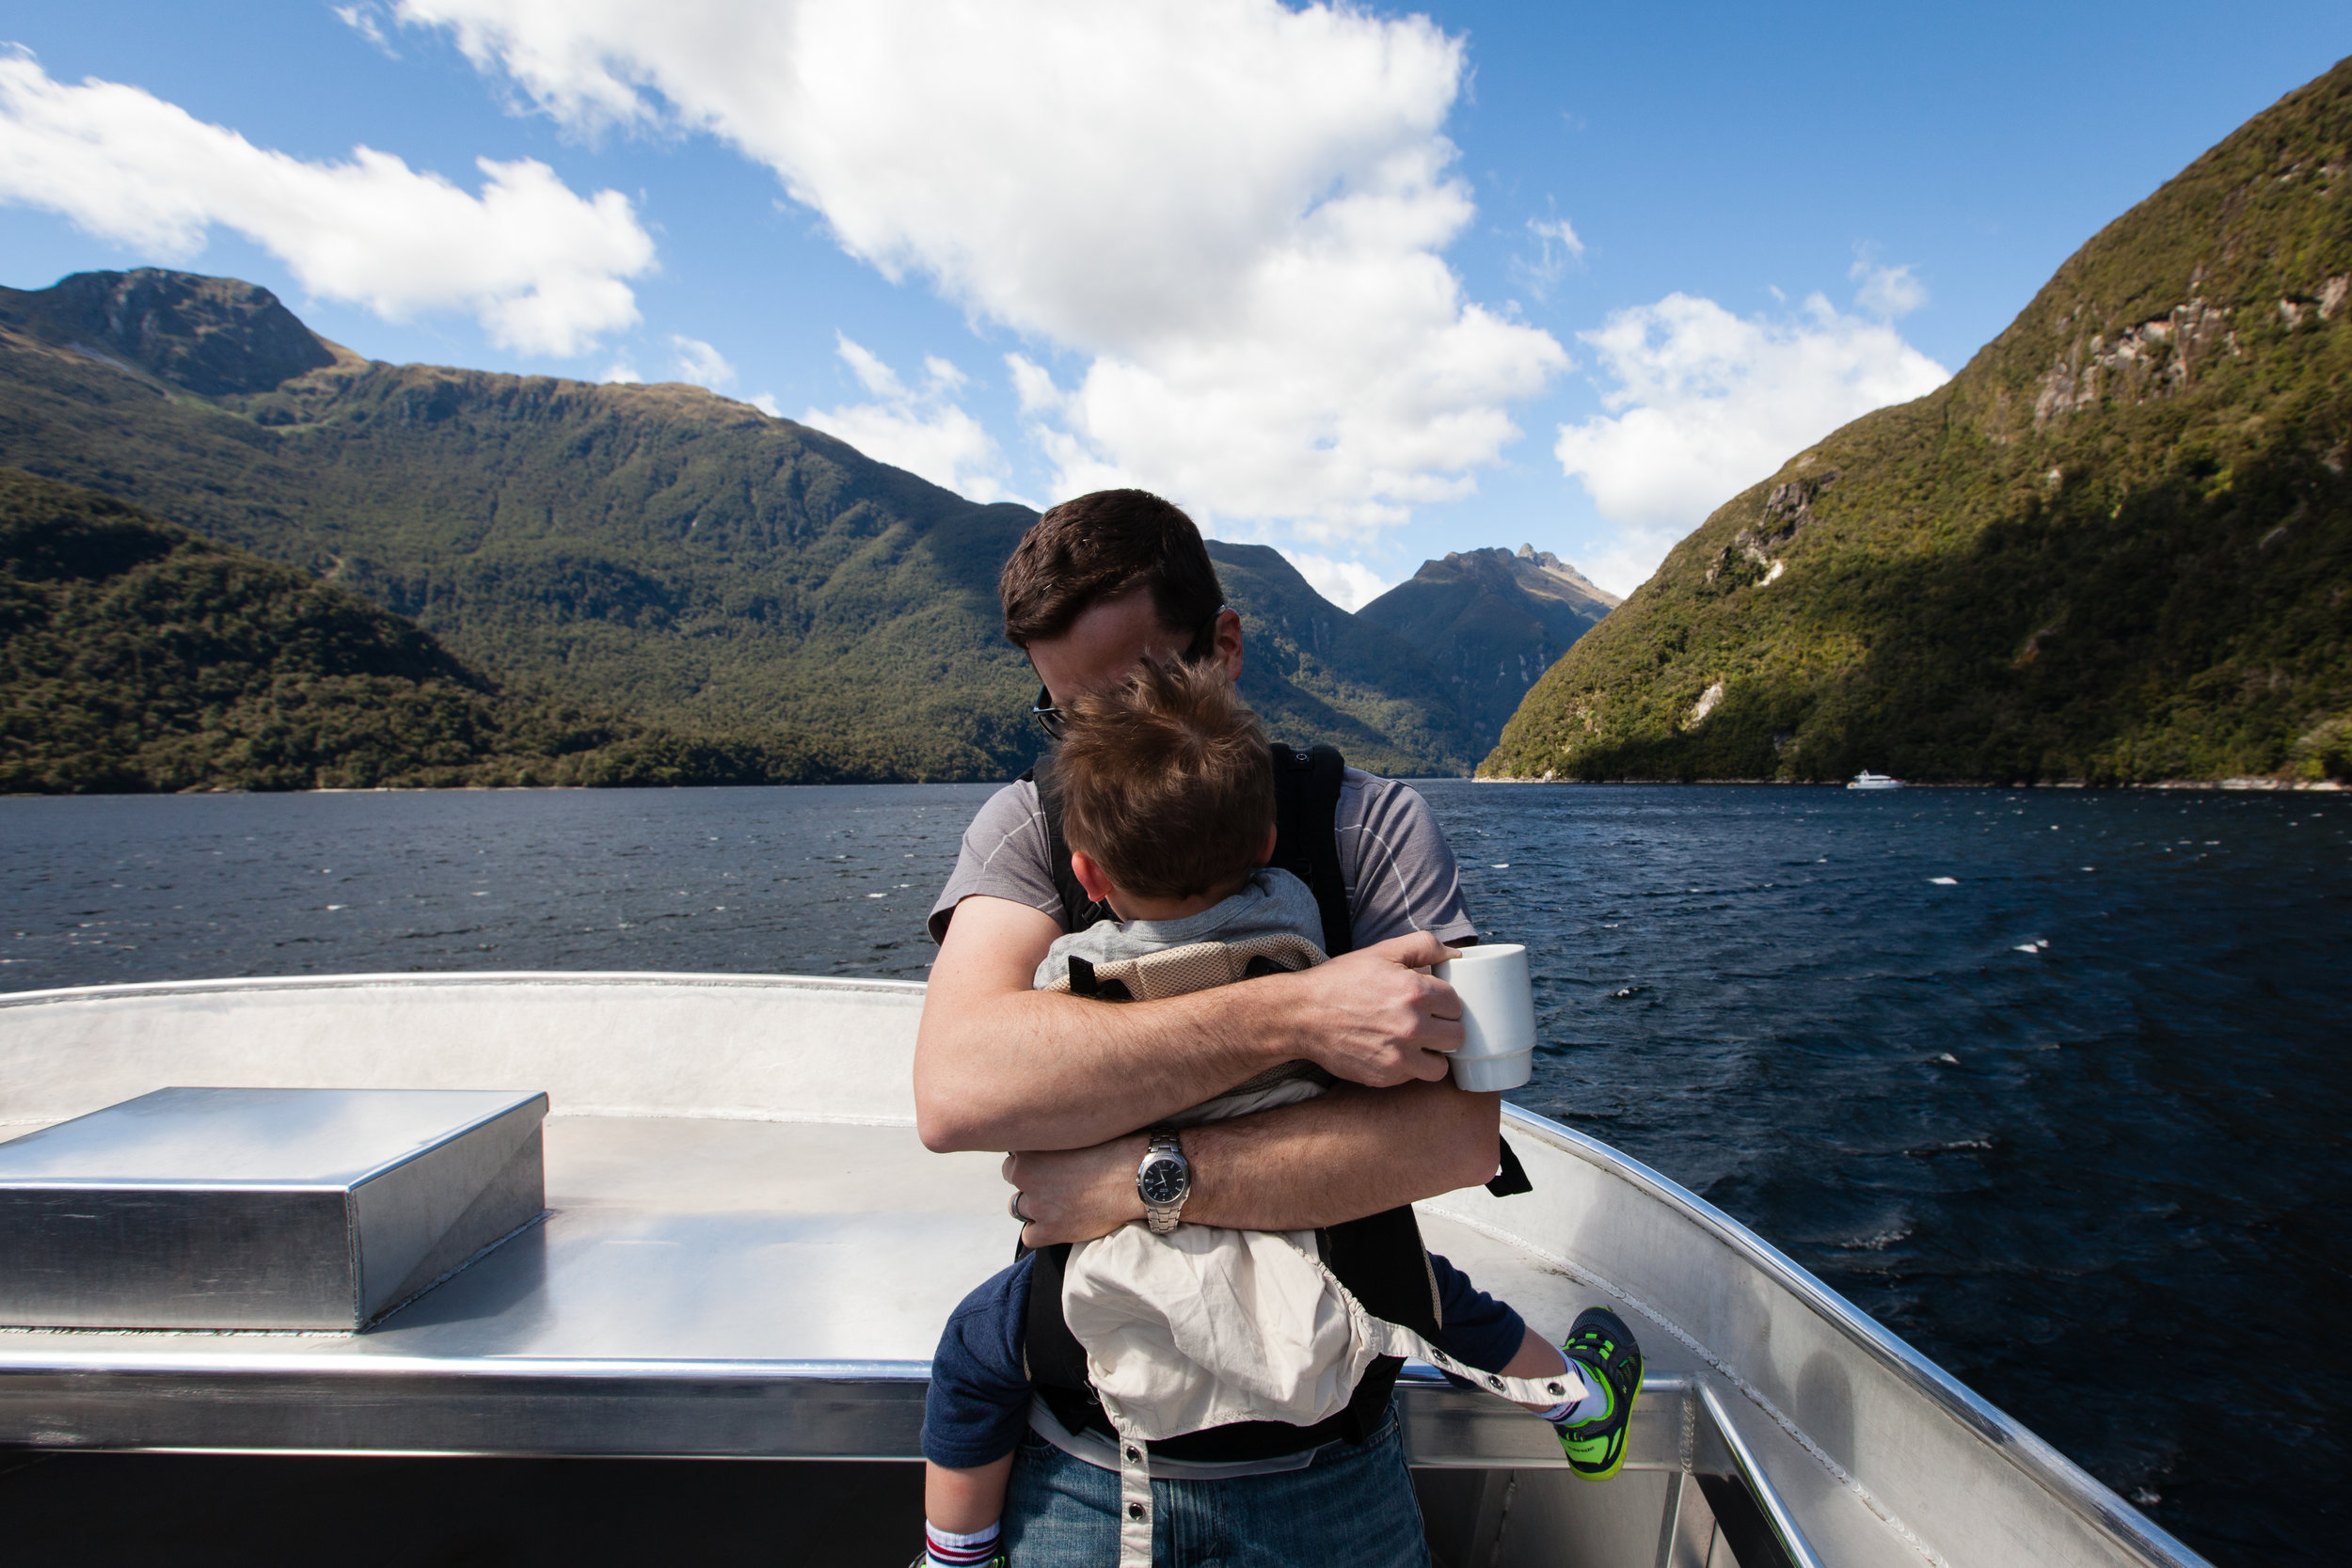 Attempting nap time with Daddy on the boat. It failed. Fell asleep on the bus ride back over the pass to Manapouri. Late nap but still worked out.